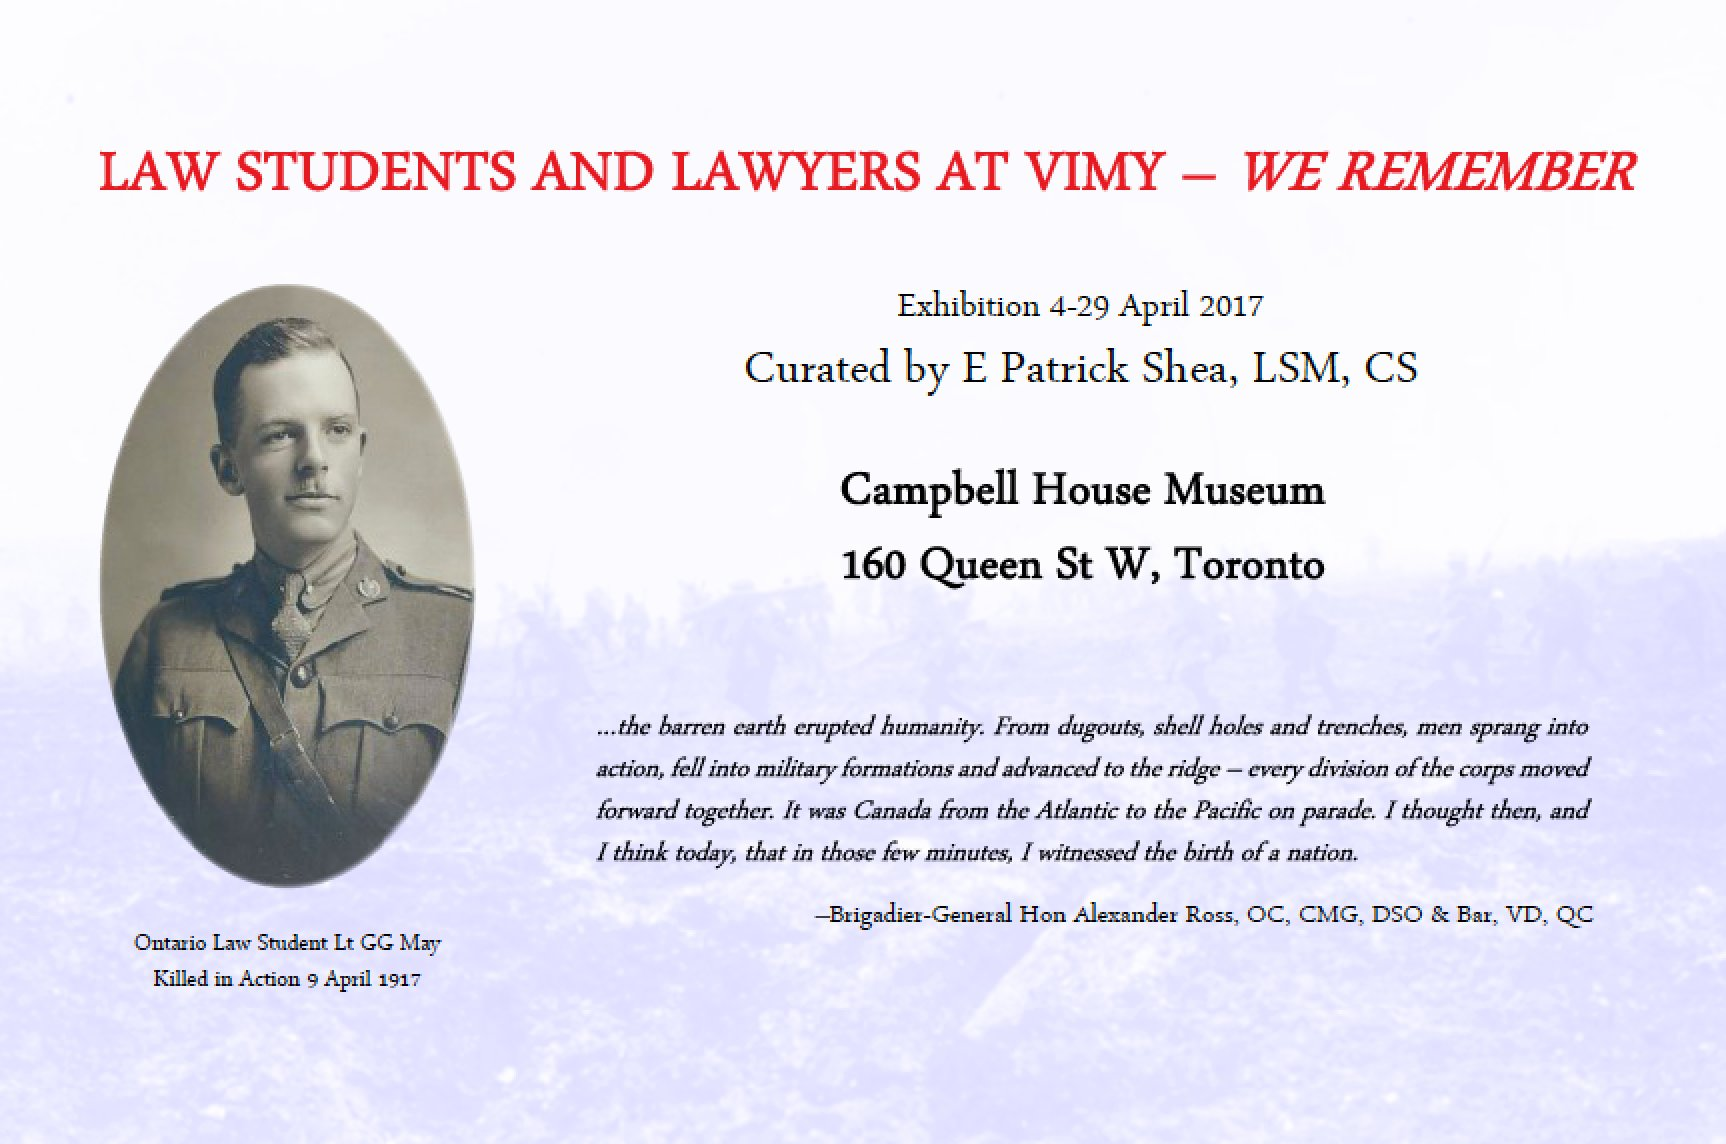 Exhibition: Law Students and Lawyers at Vimy - We Remember. Campbell House Museum 4-29 April https://t.co/WSO7911Ee9